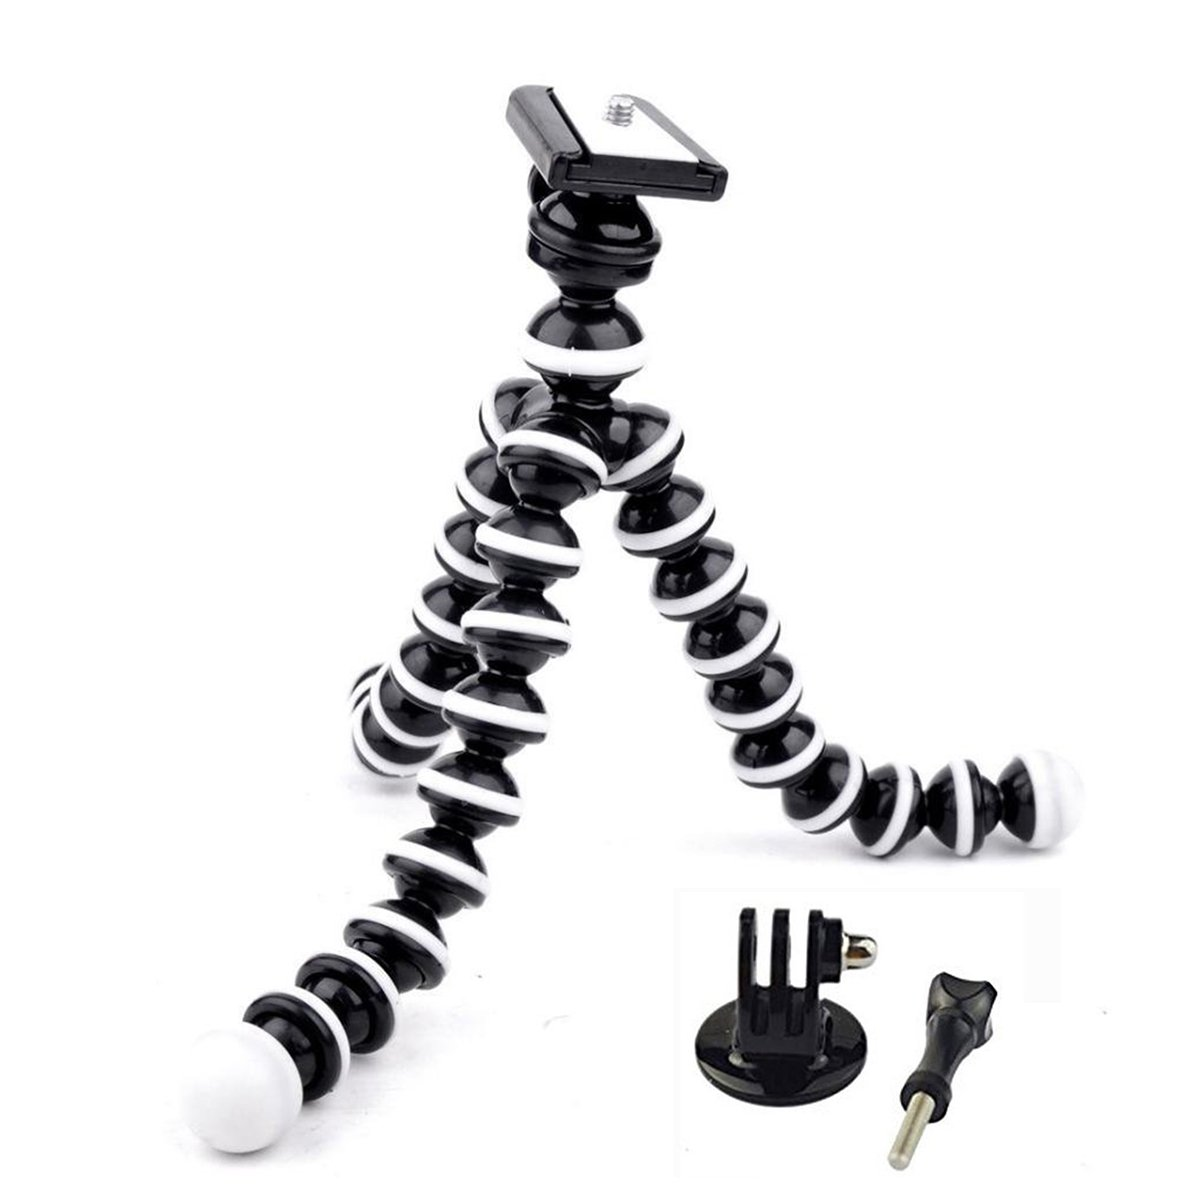 Eggsnow Flexible Octopus Tripod Stand for Gopro Mount Adapter included-Black